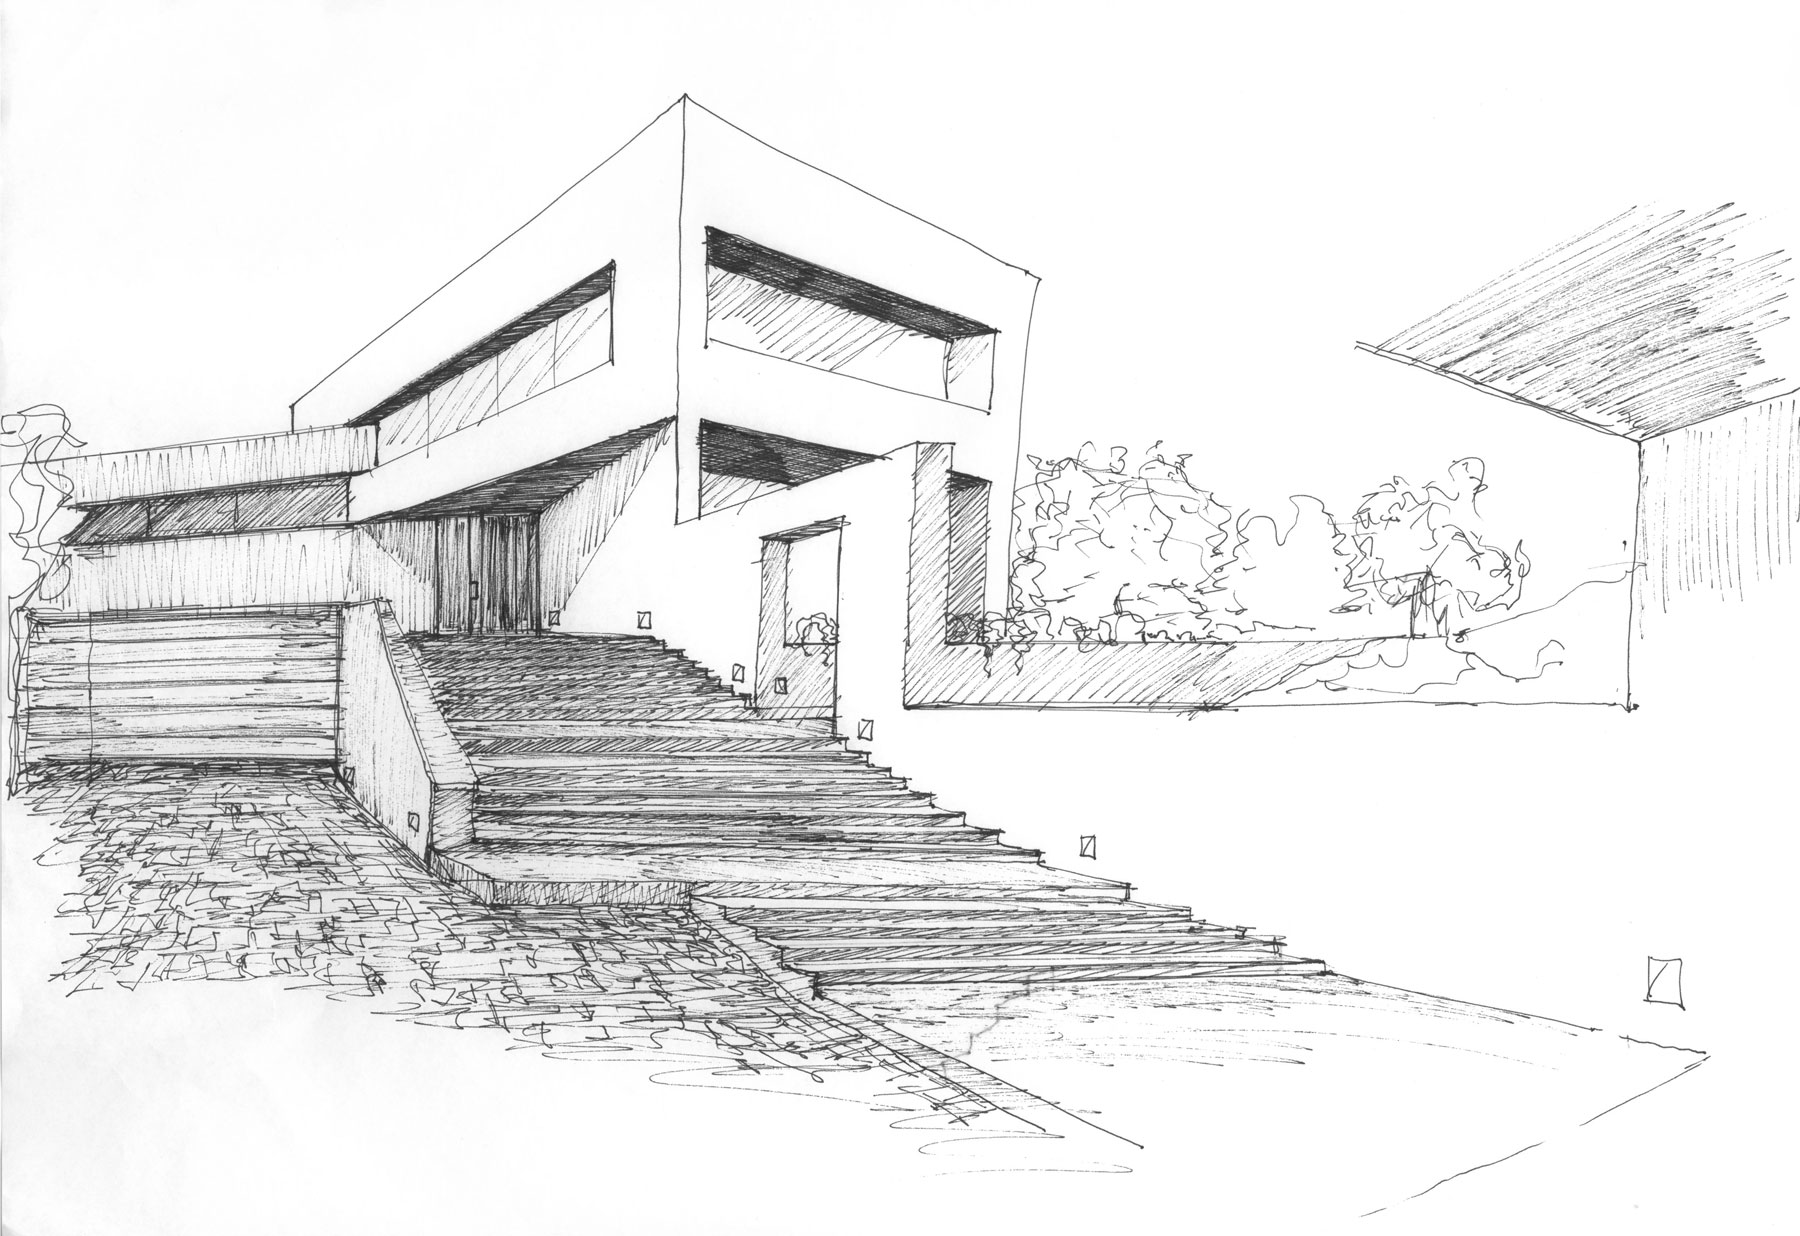 Drawn house modern architectural design On this Pinterest sketching and